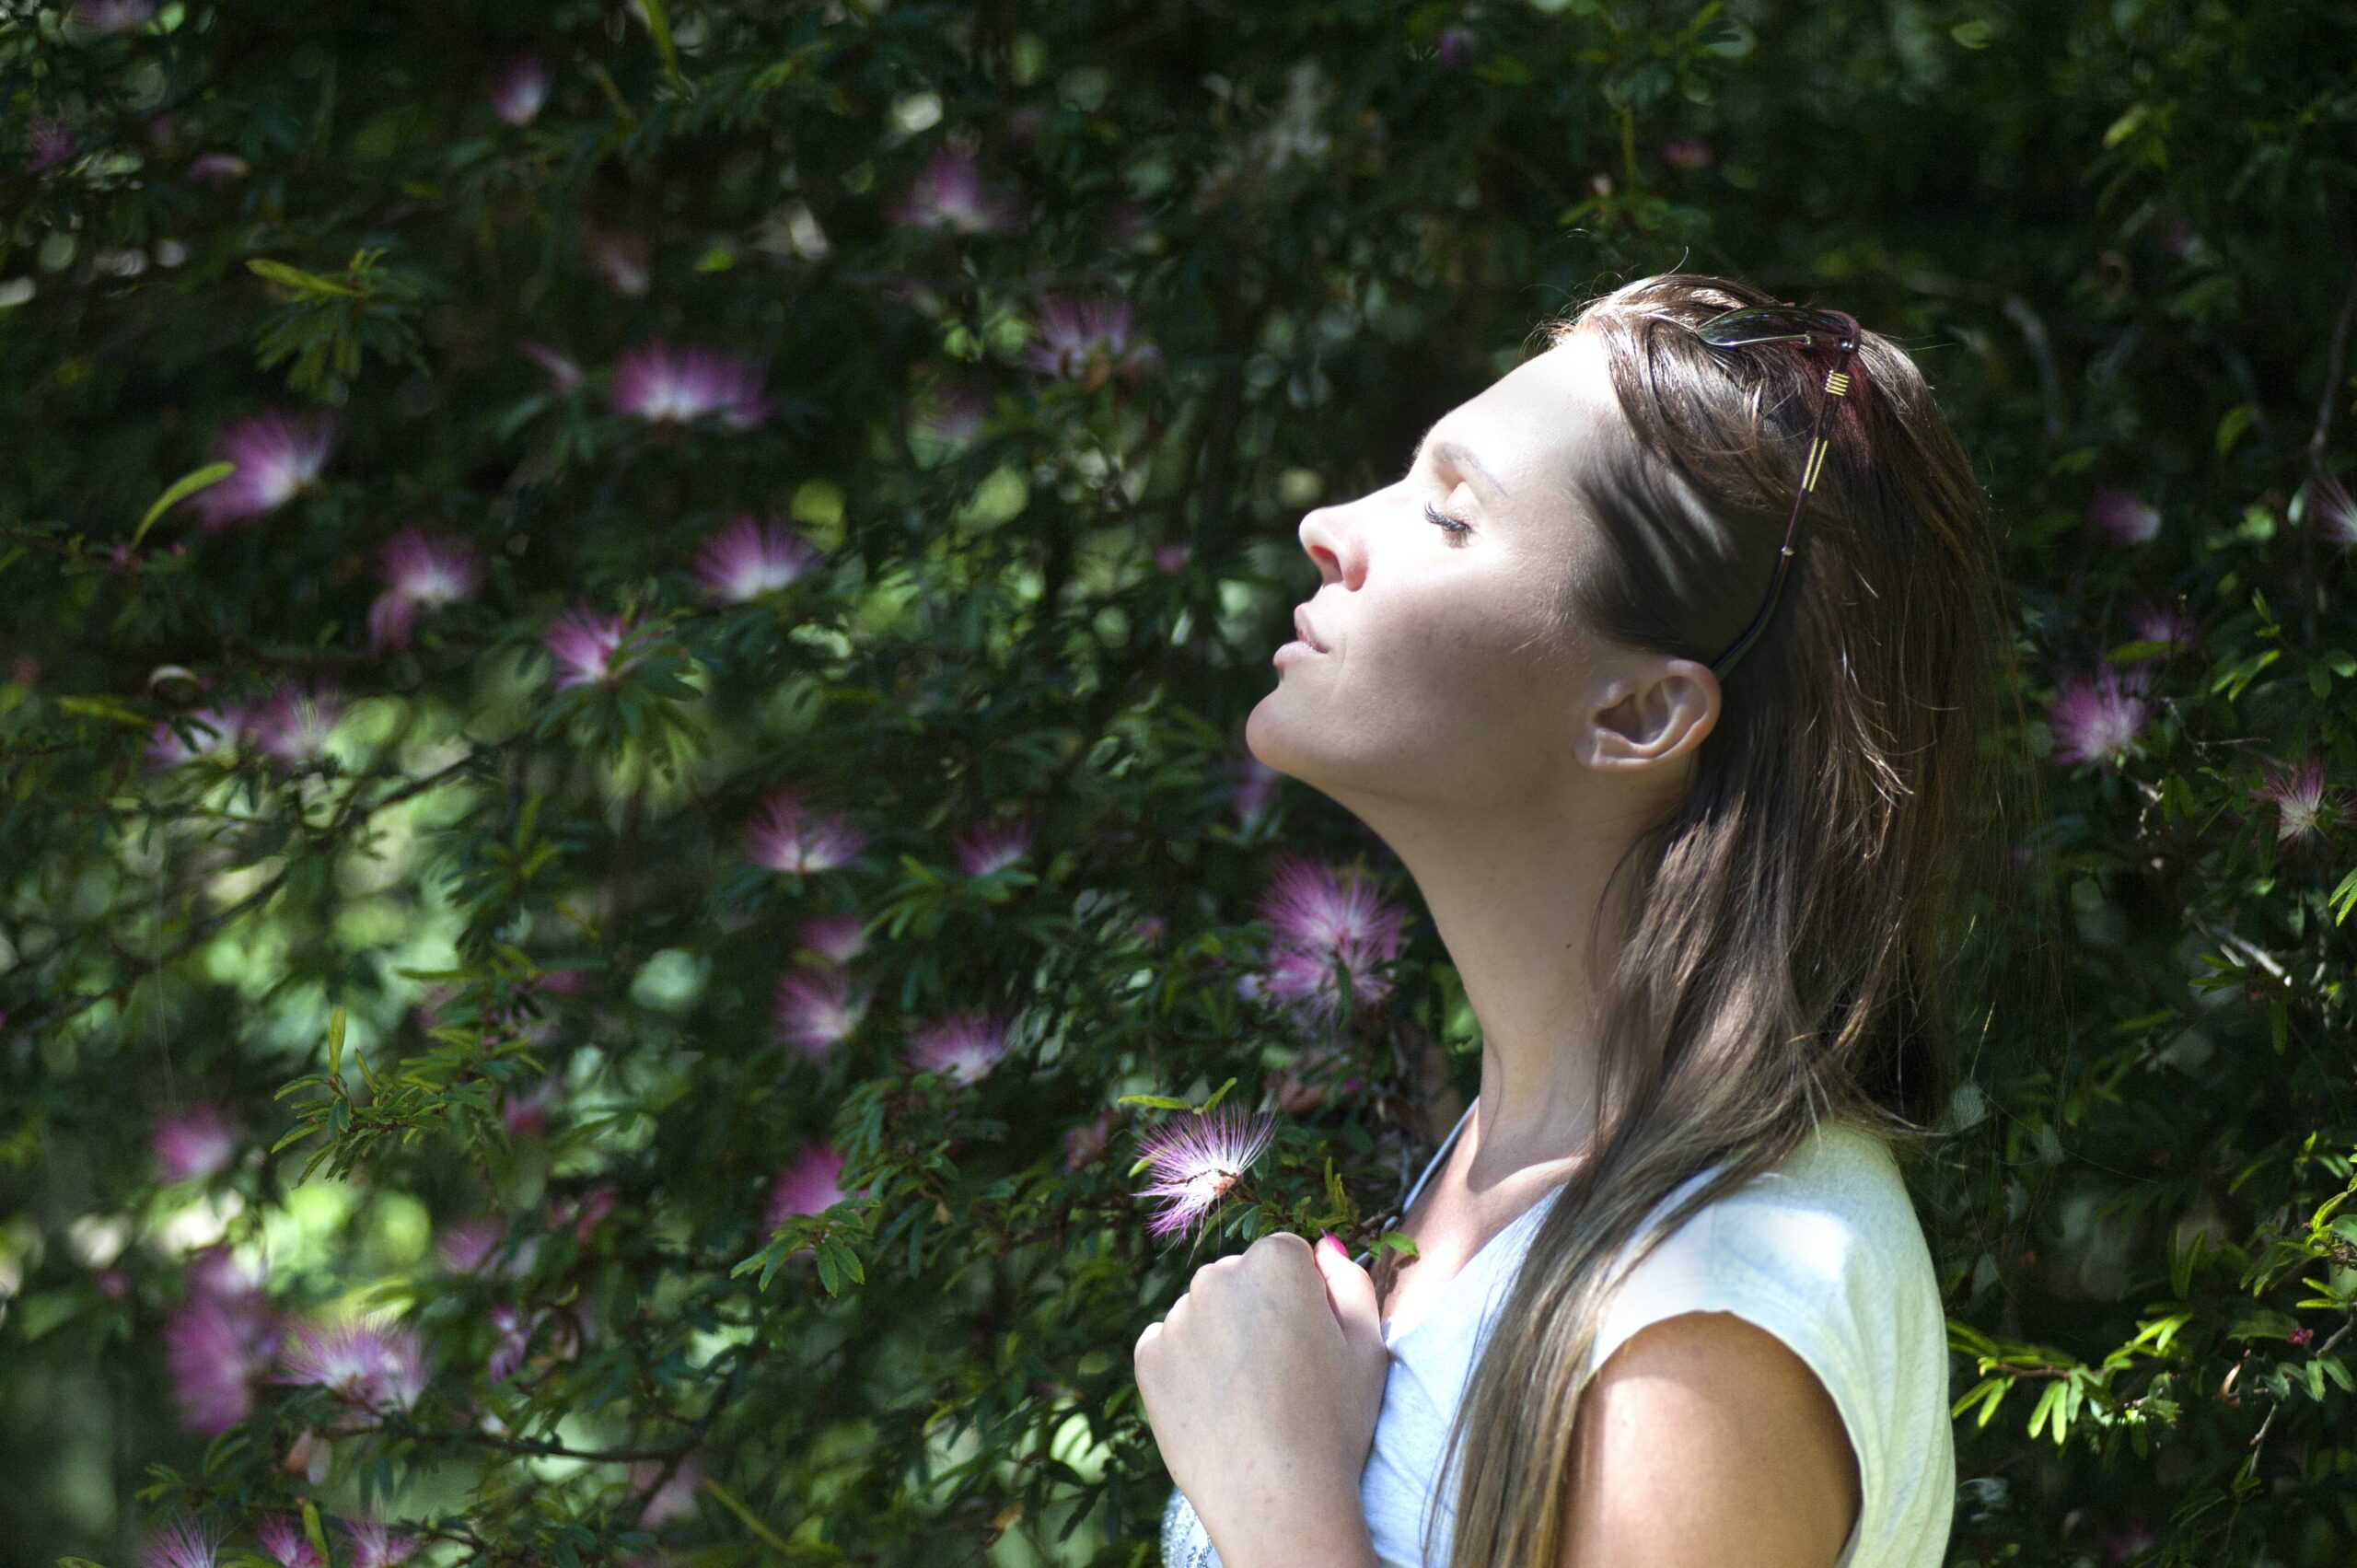 woman praying while standing in trees. She has her hands clasped in front of her while eyes are closed and head leaning back facing heaven.